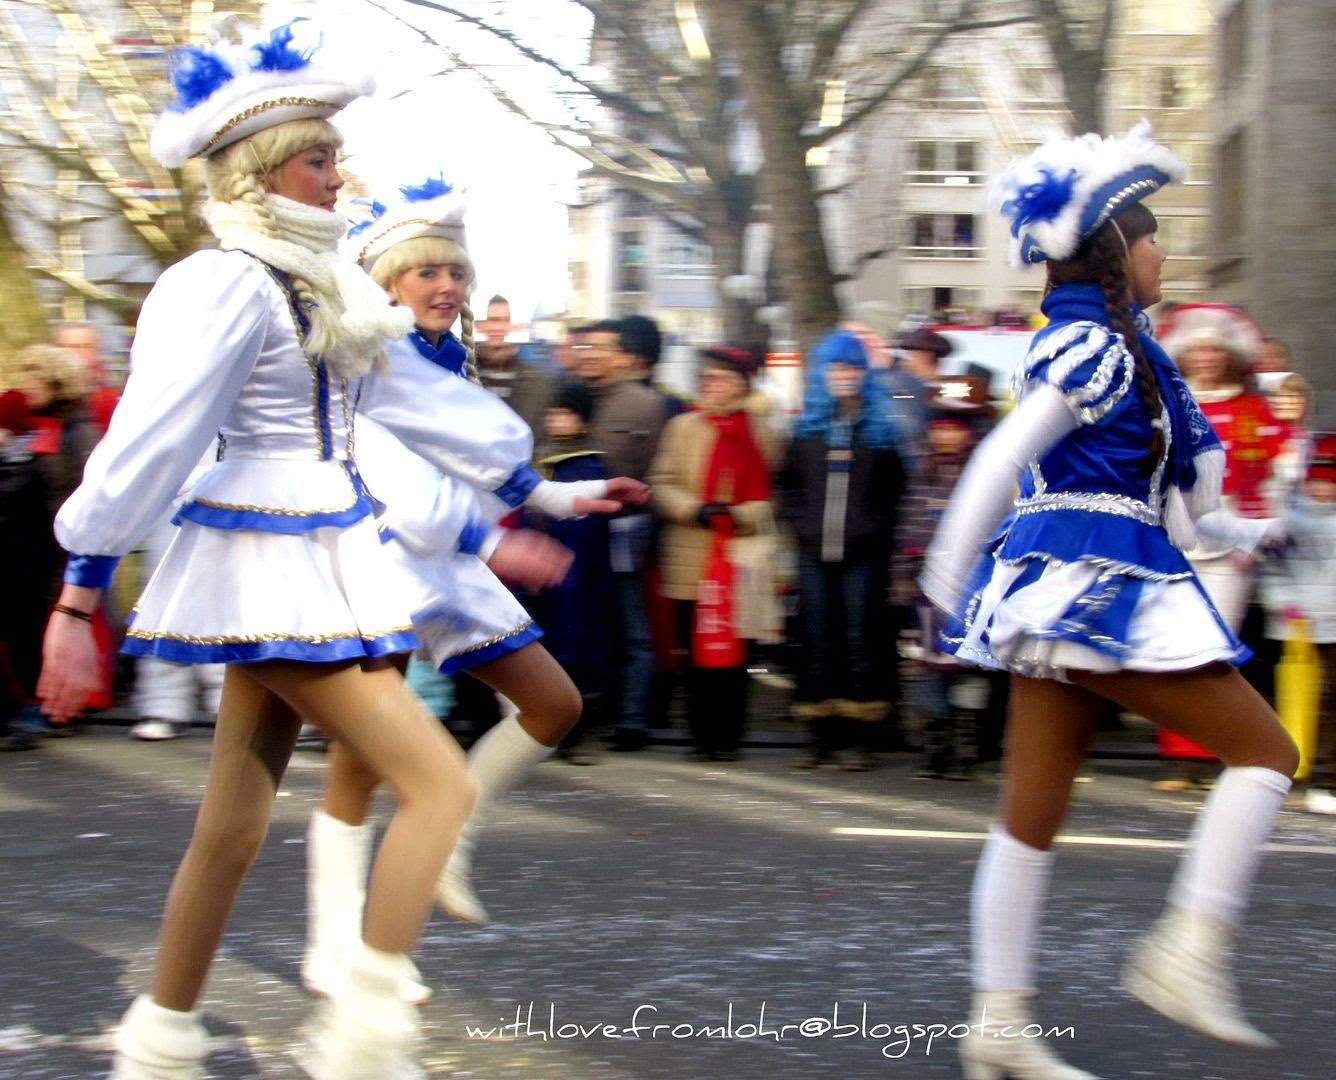 20.02.12, Today is Rosenmontag or Rose Monday in Germany. It is the highlight of the German carnival, a day of celebration which includes dressing up in costumes, parades and heavy drinking!!!